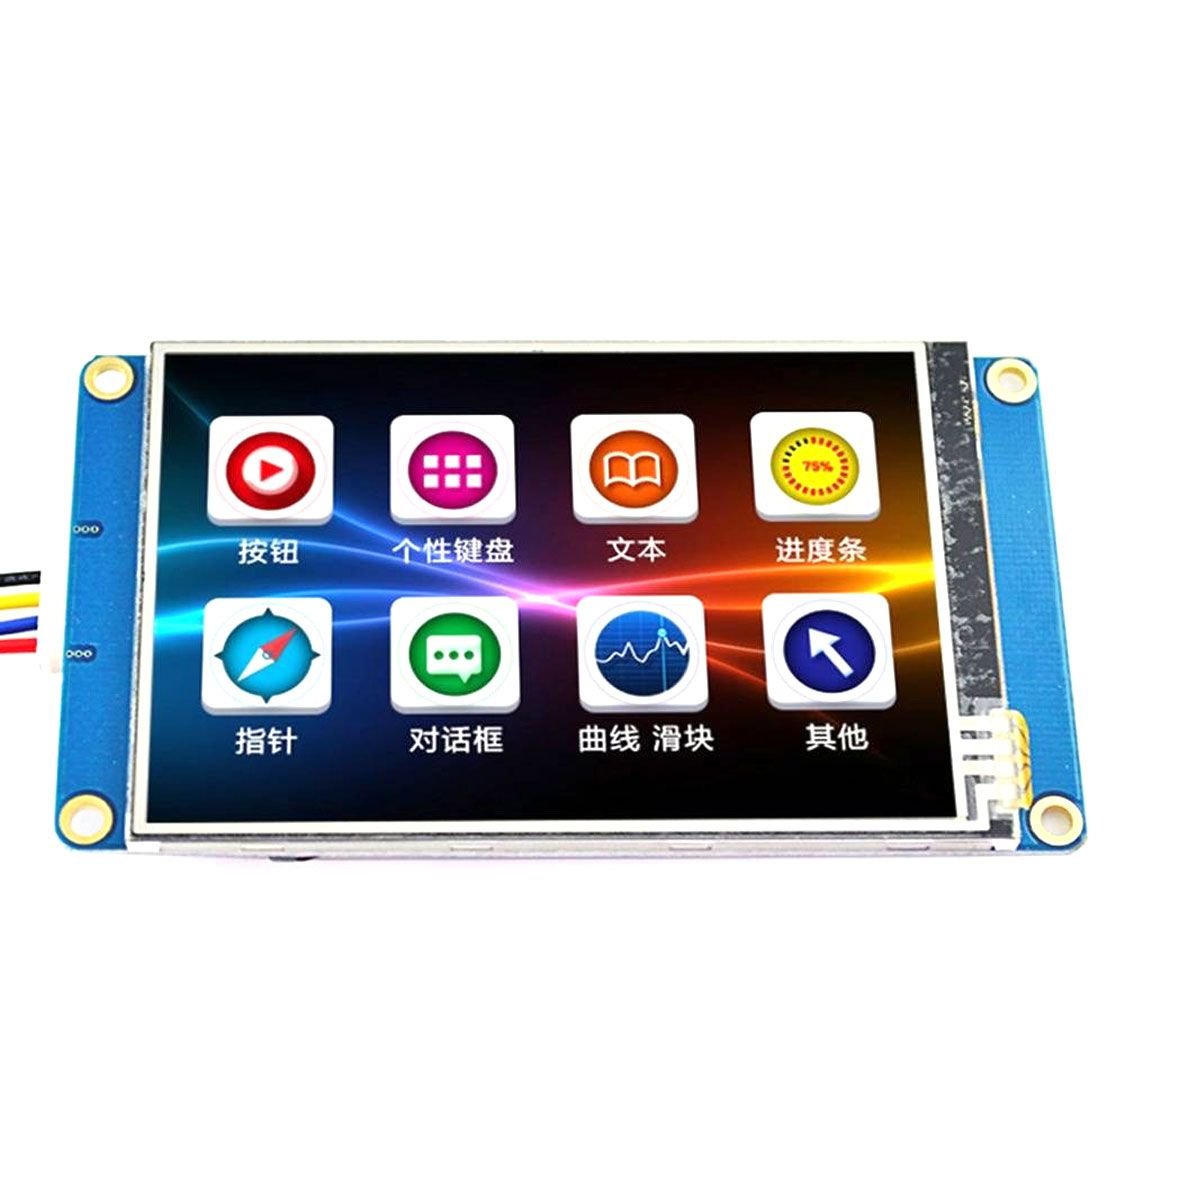 Tela LCD Nextion 4.3 TFT 480x272 Touch Screen para Arduino, Raspberry, Esp